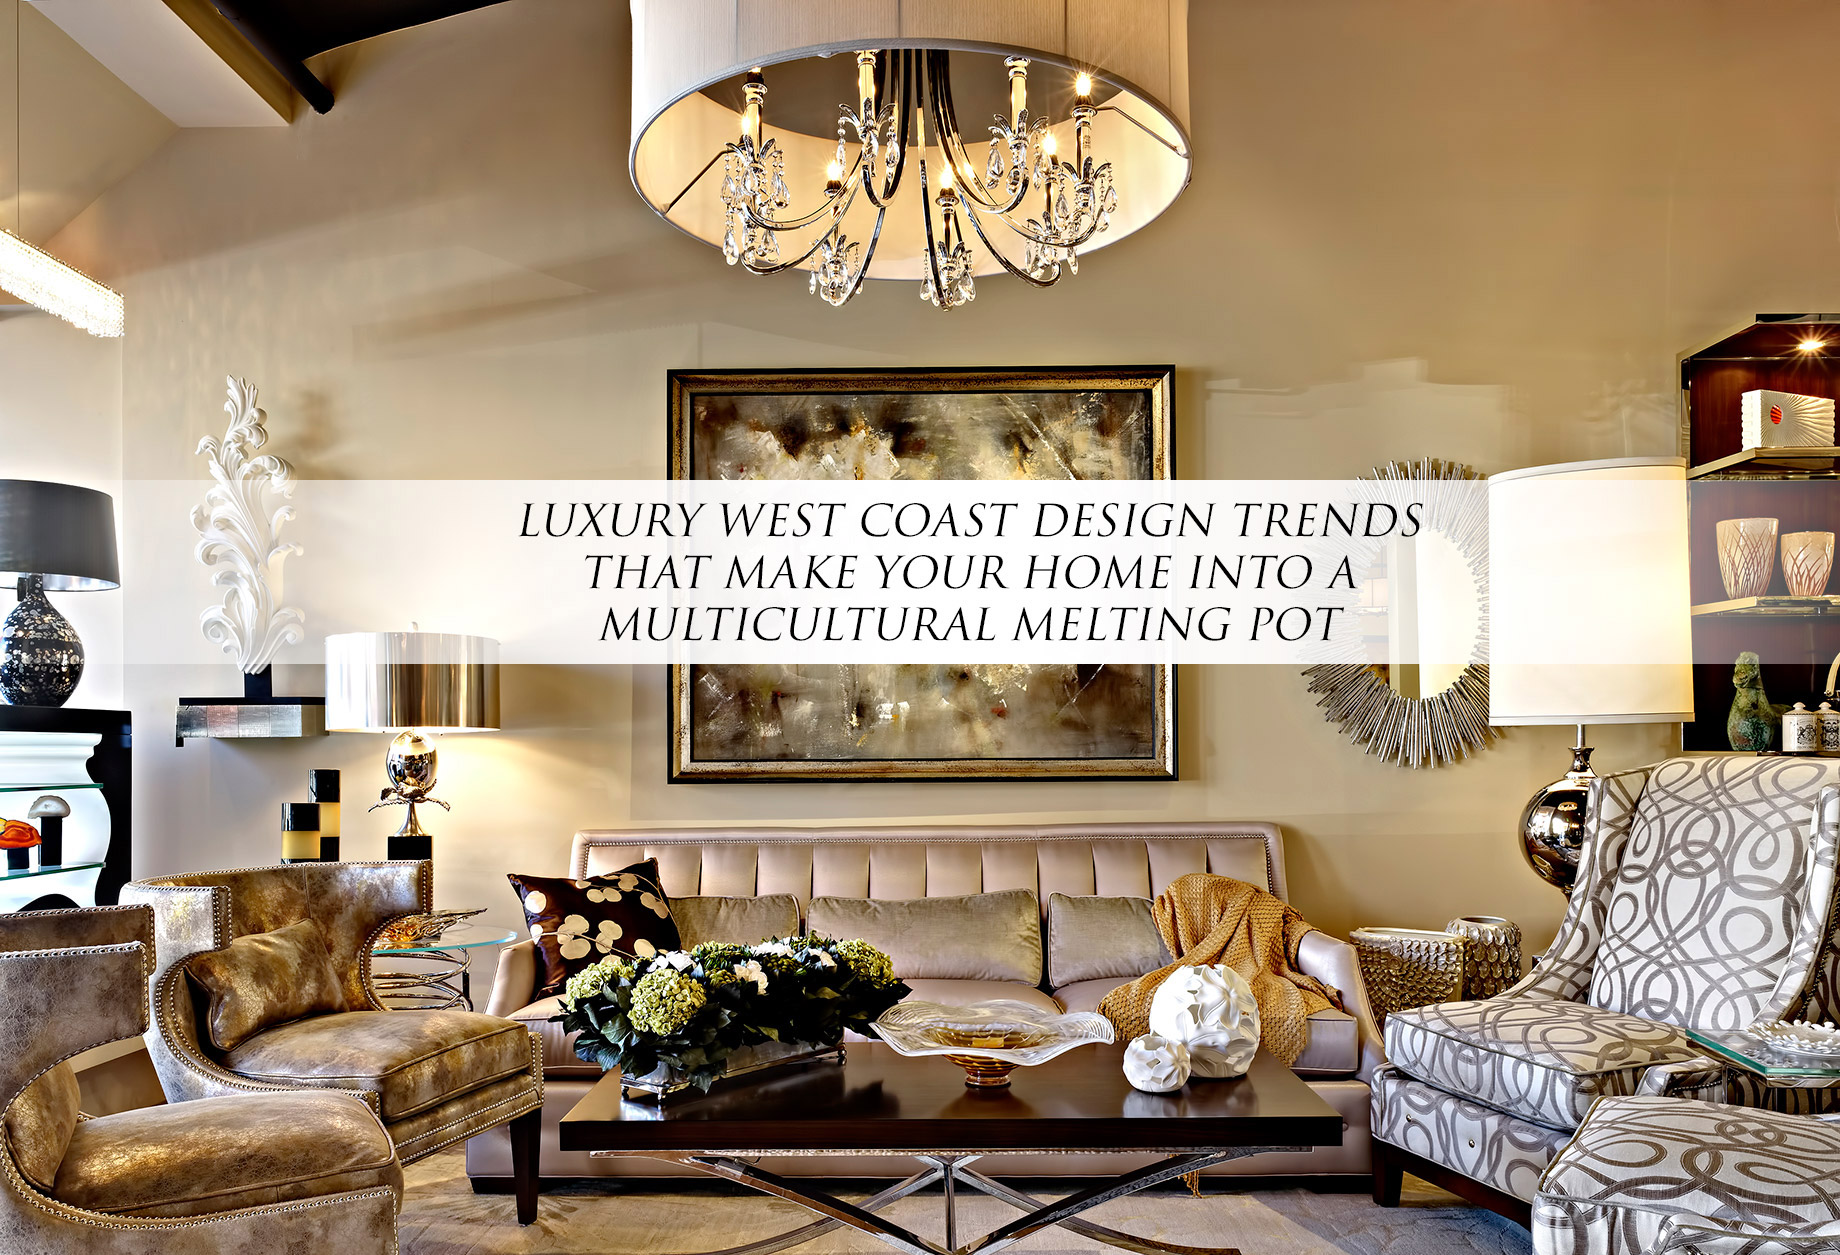 Luxury West Coast Design Trends that Make Your Home Into a Multicultural Melting Pot